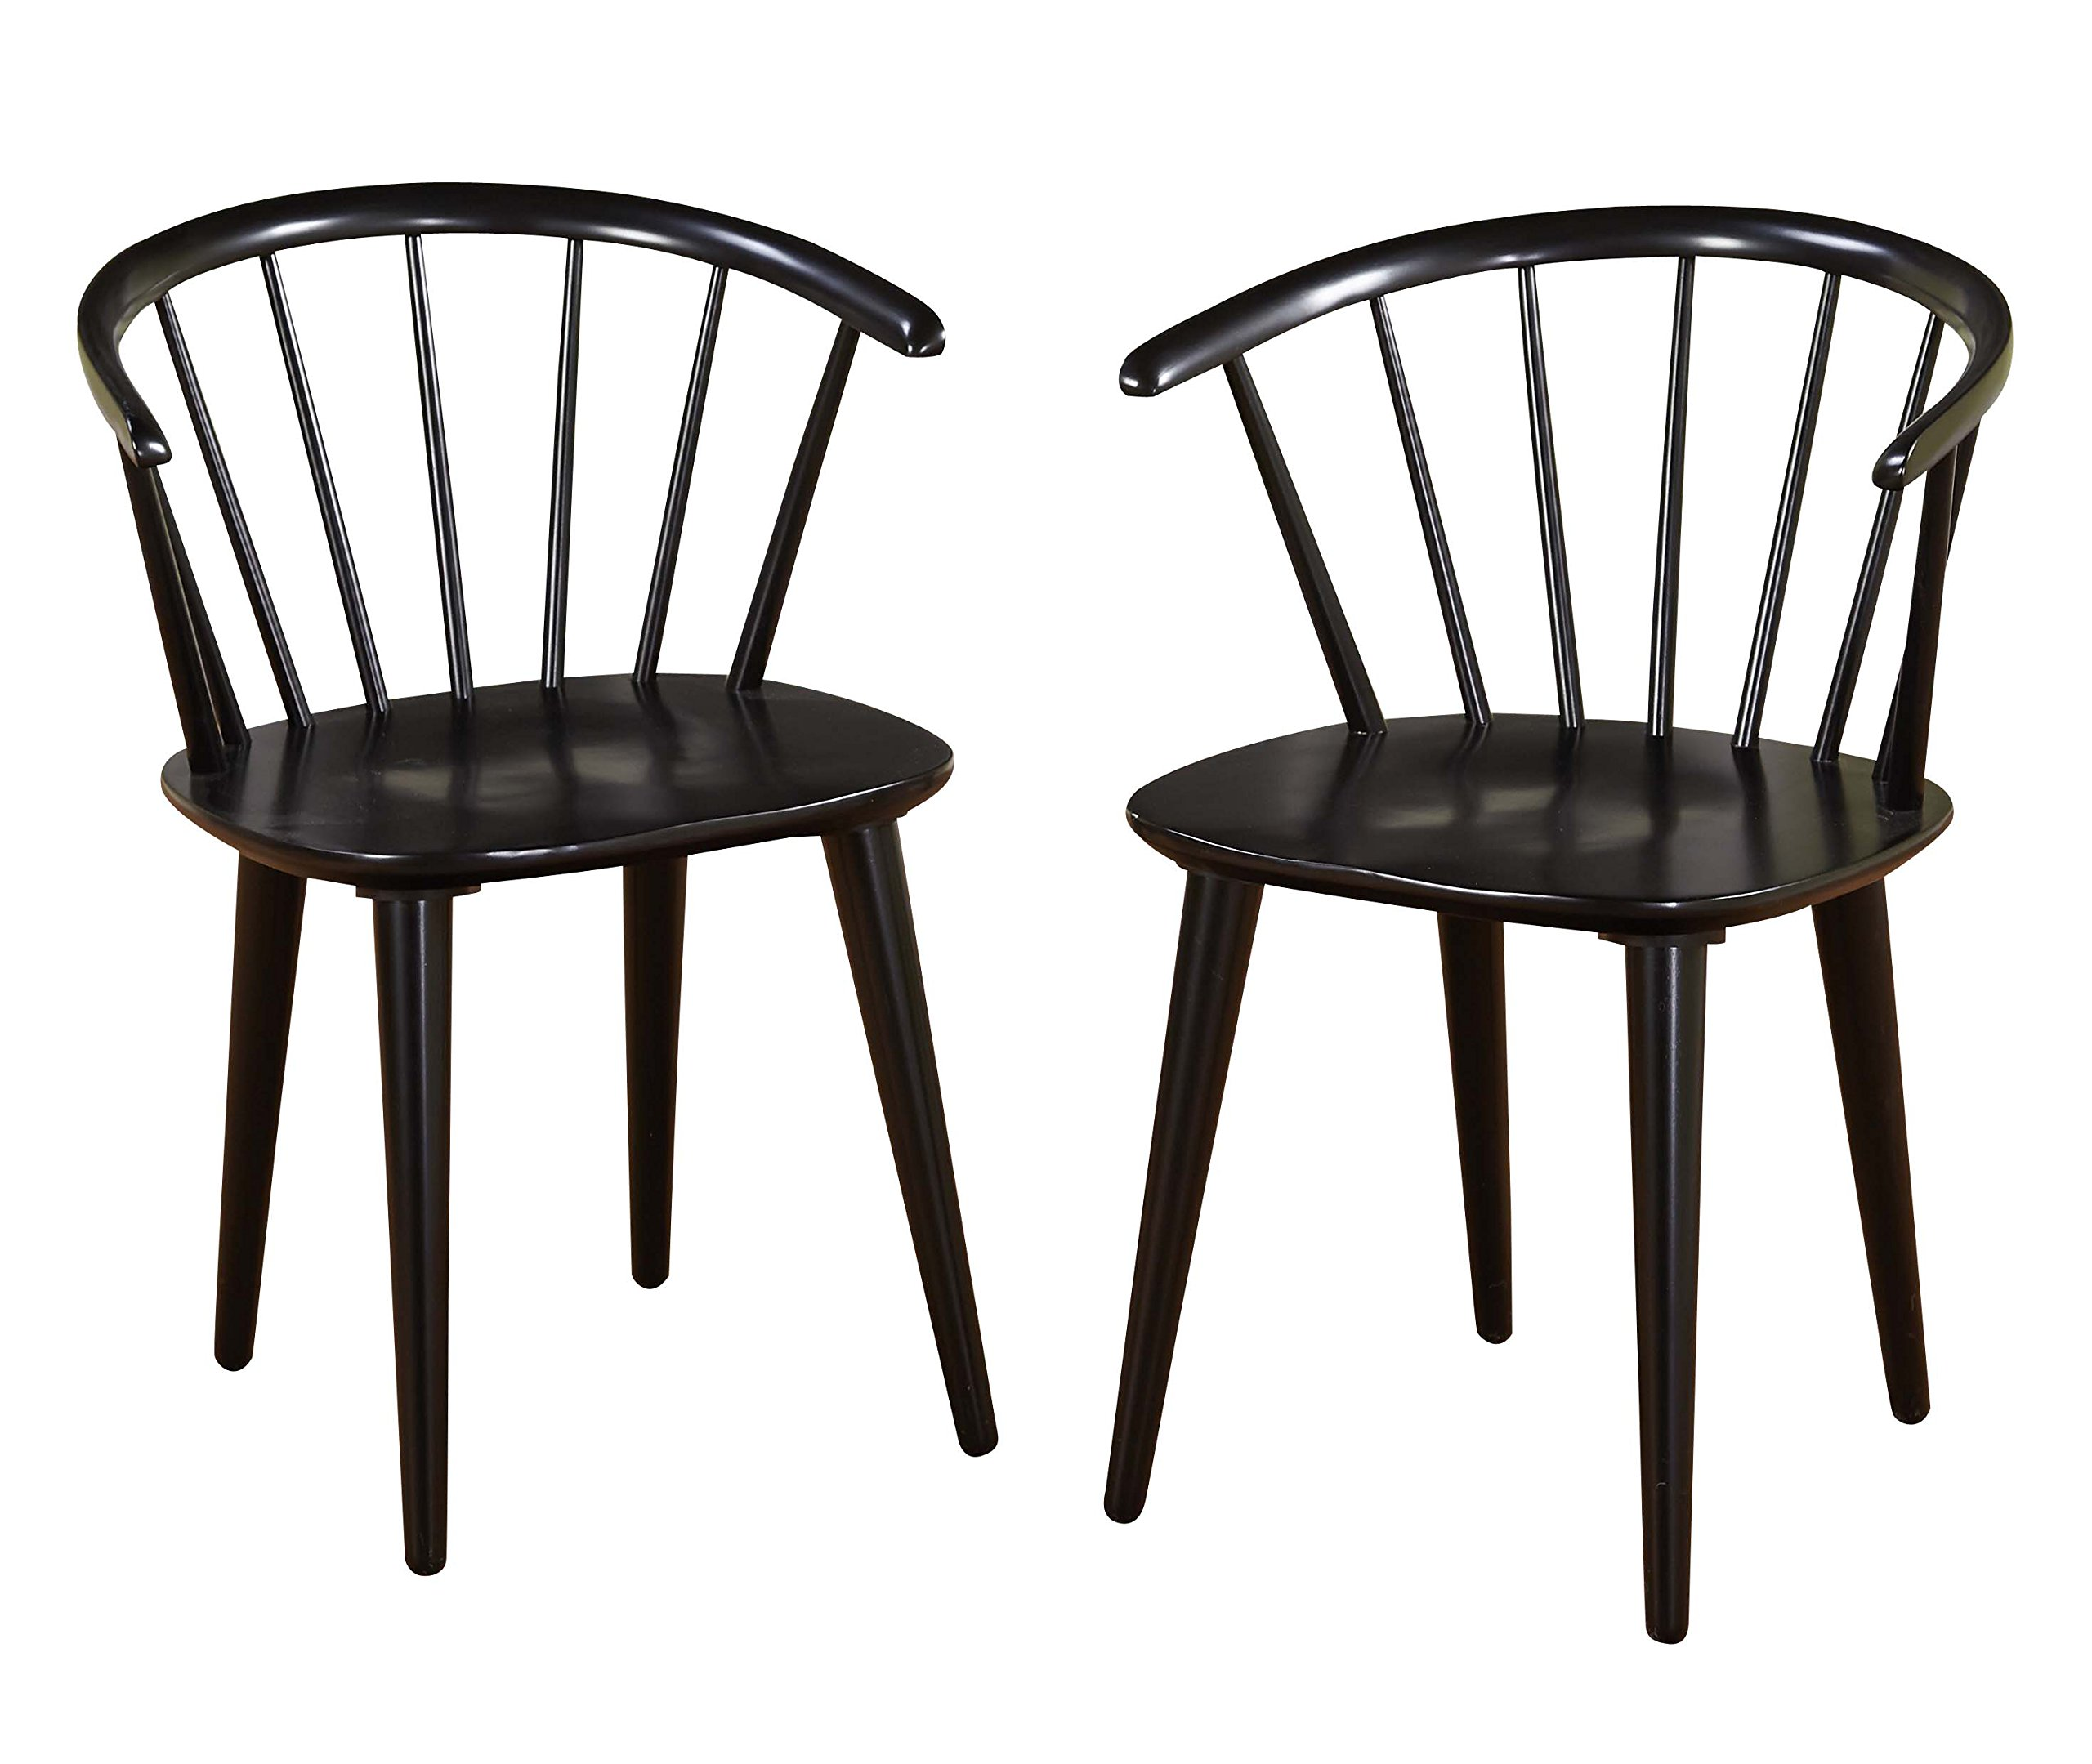 Target Marketing Systems Set of 2 Florence Dining Chairs with Low Windsor Spindle Back, Set of 2, Black by Target Marketing Systems